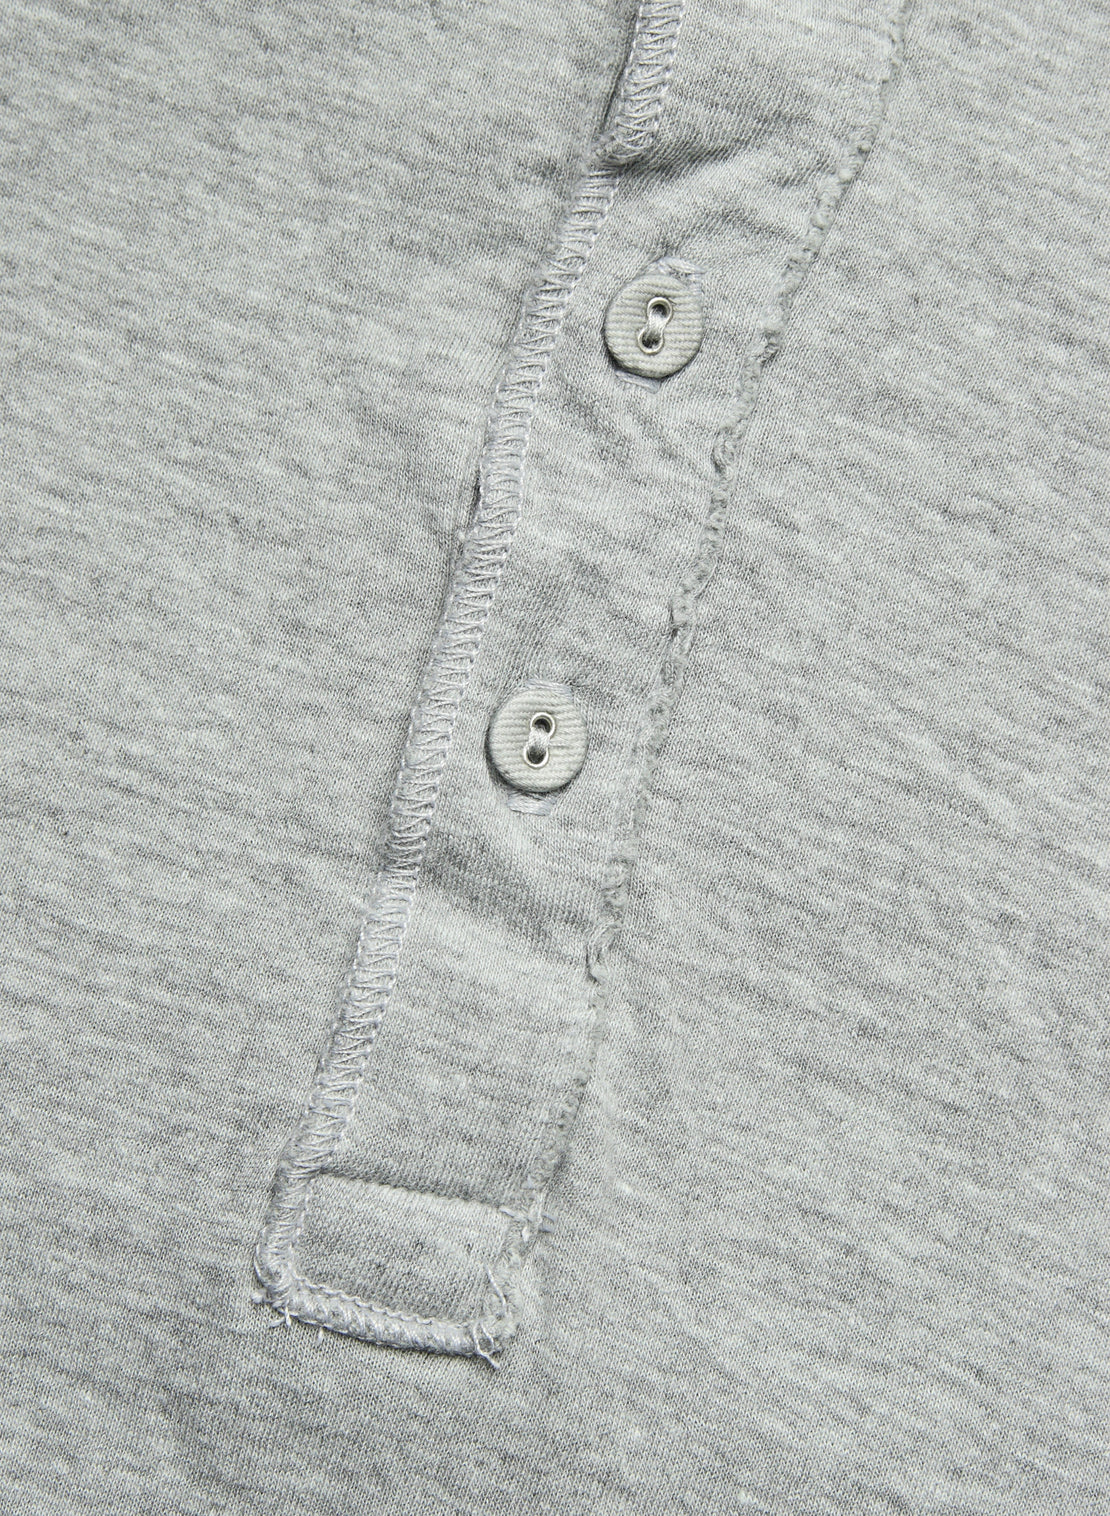 Pointelle Henley - Silver Heather - Save Khaki - STAG Provisions - Tops - L/S Knit